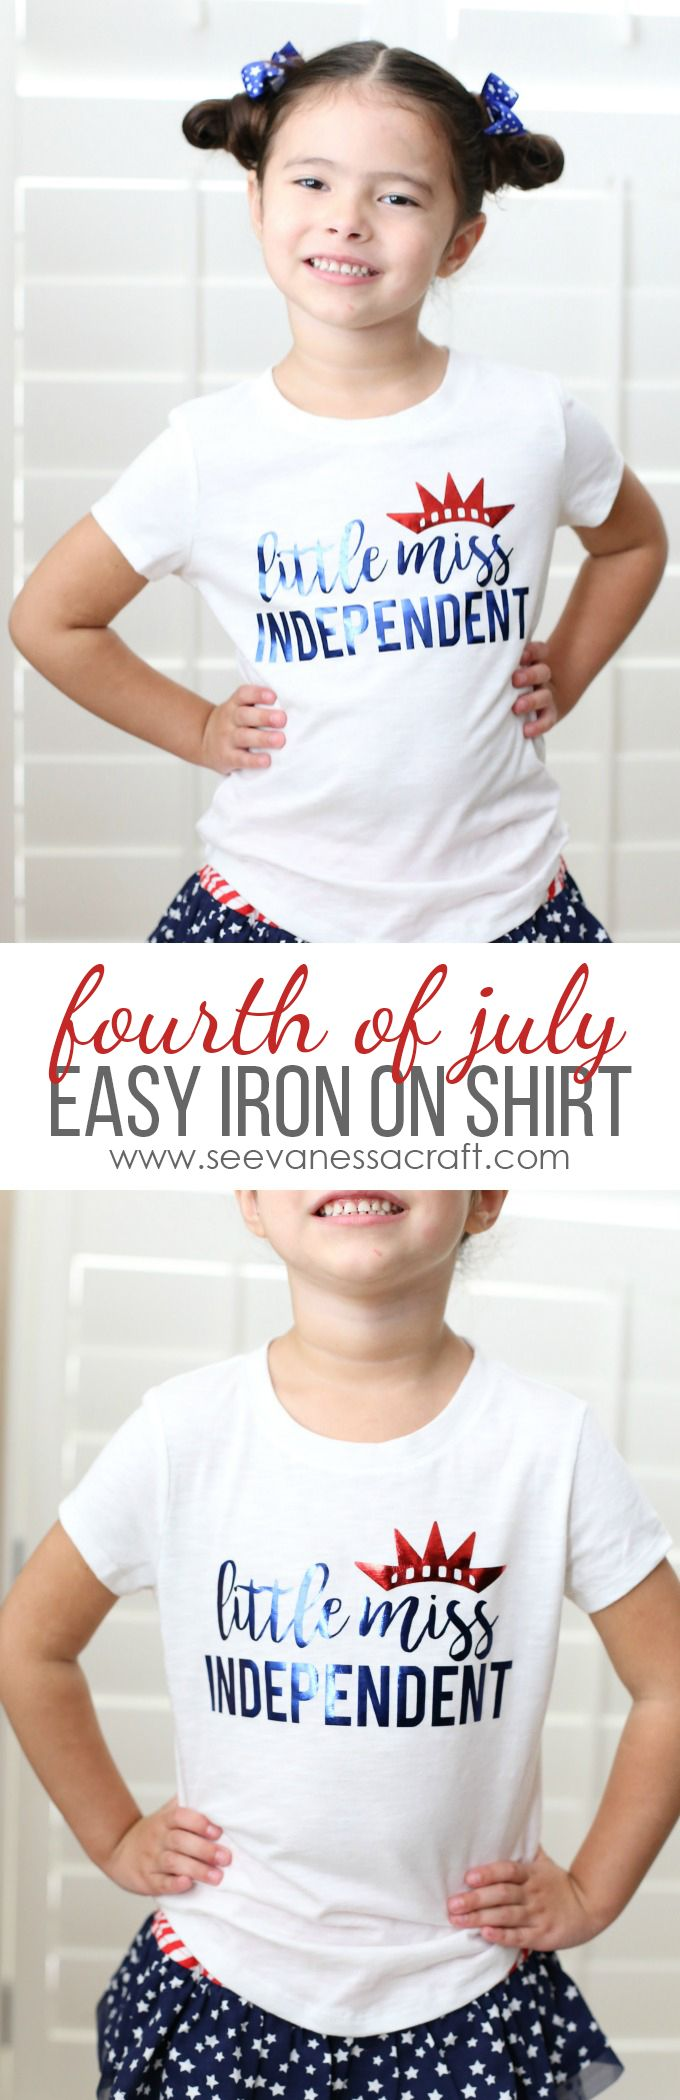 Easy Foil Iron On Tutorial with Free Cut Image - Little Miss Independent Shirt for 4th of July!